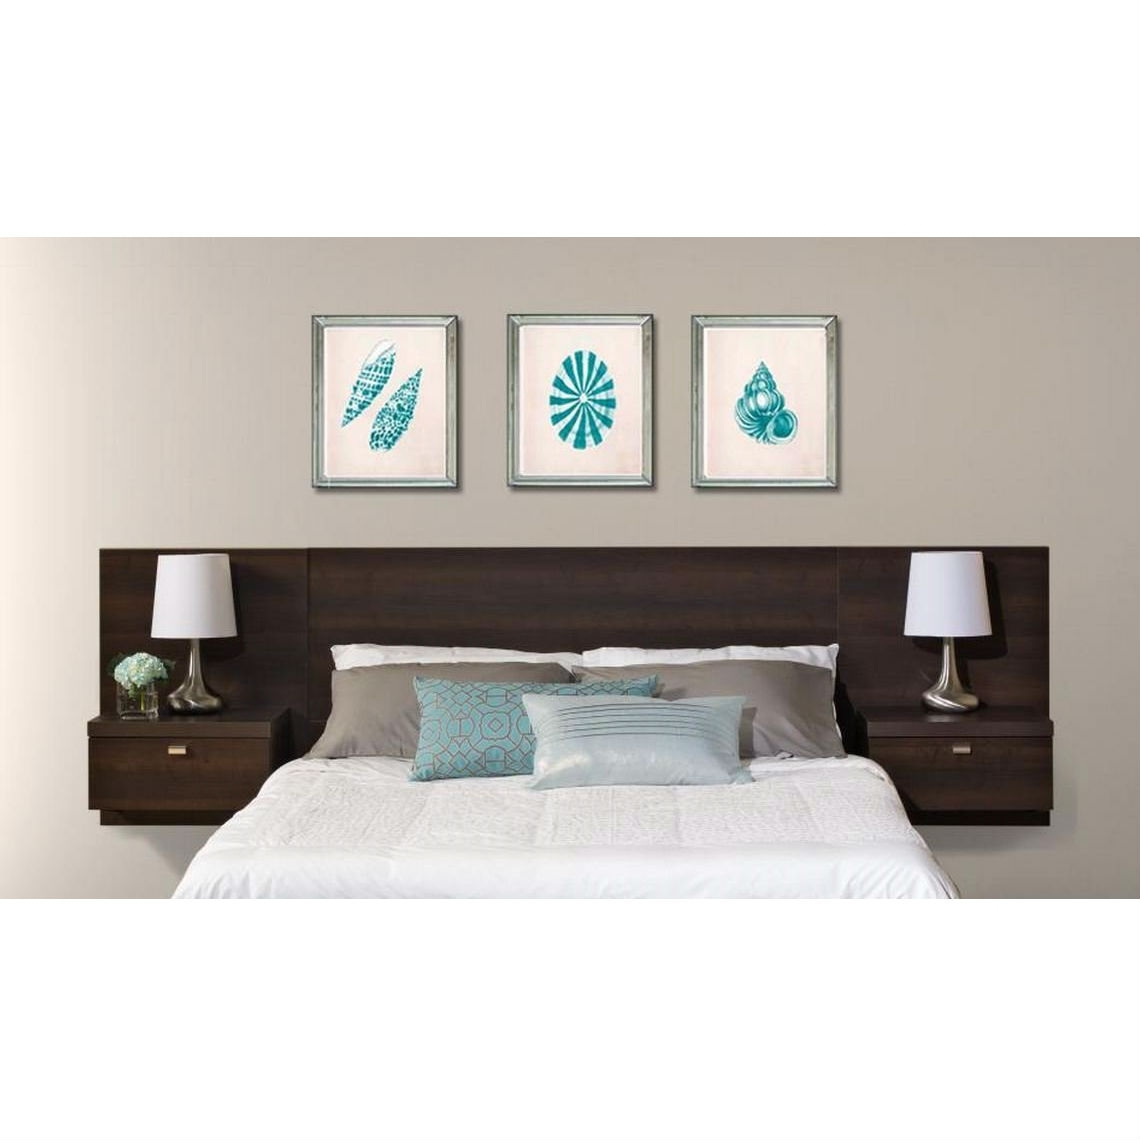 45b249e31 King size Floating Headboard with Nightstands in Espresso |  FastFurnishings.com